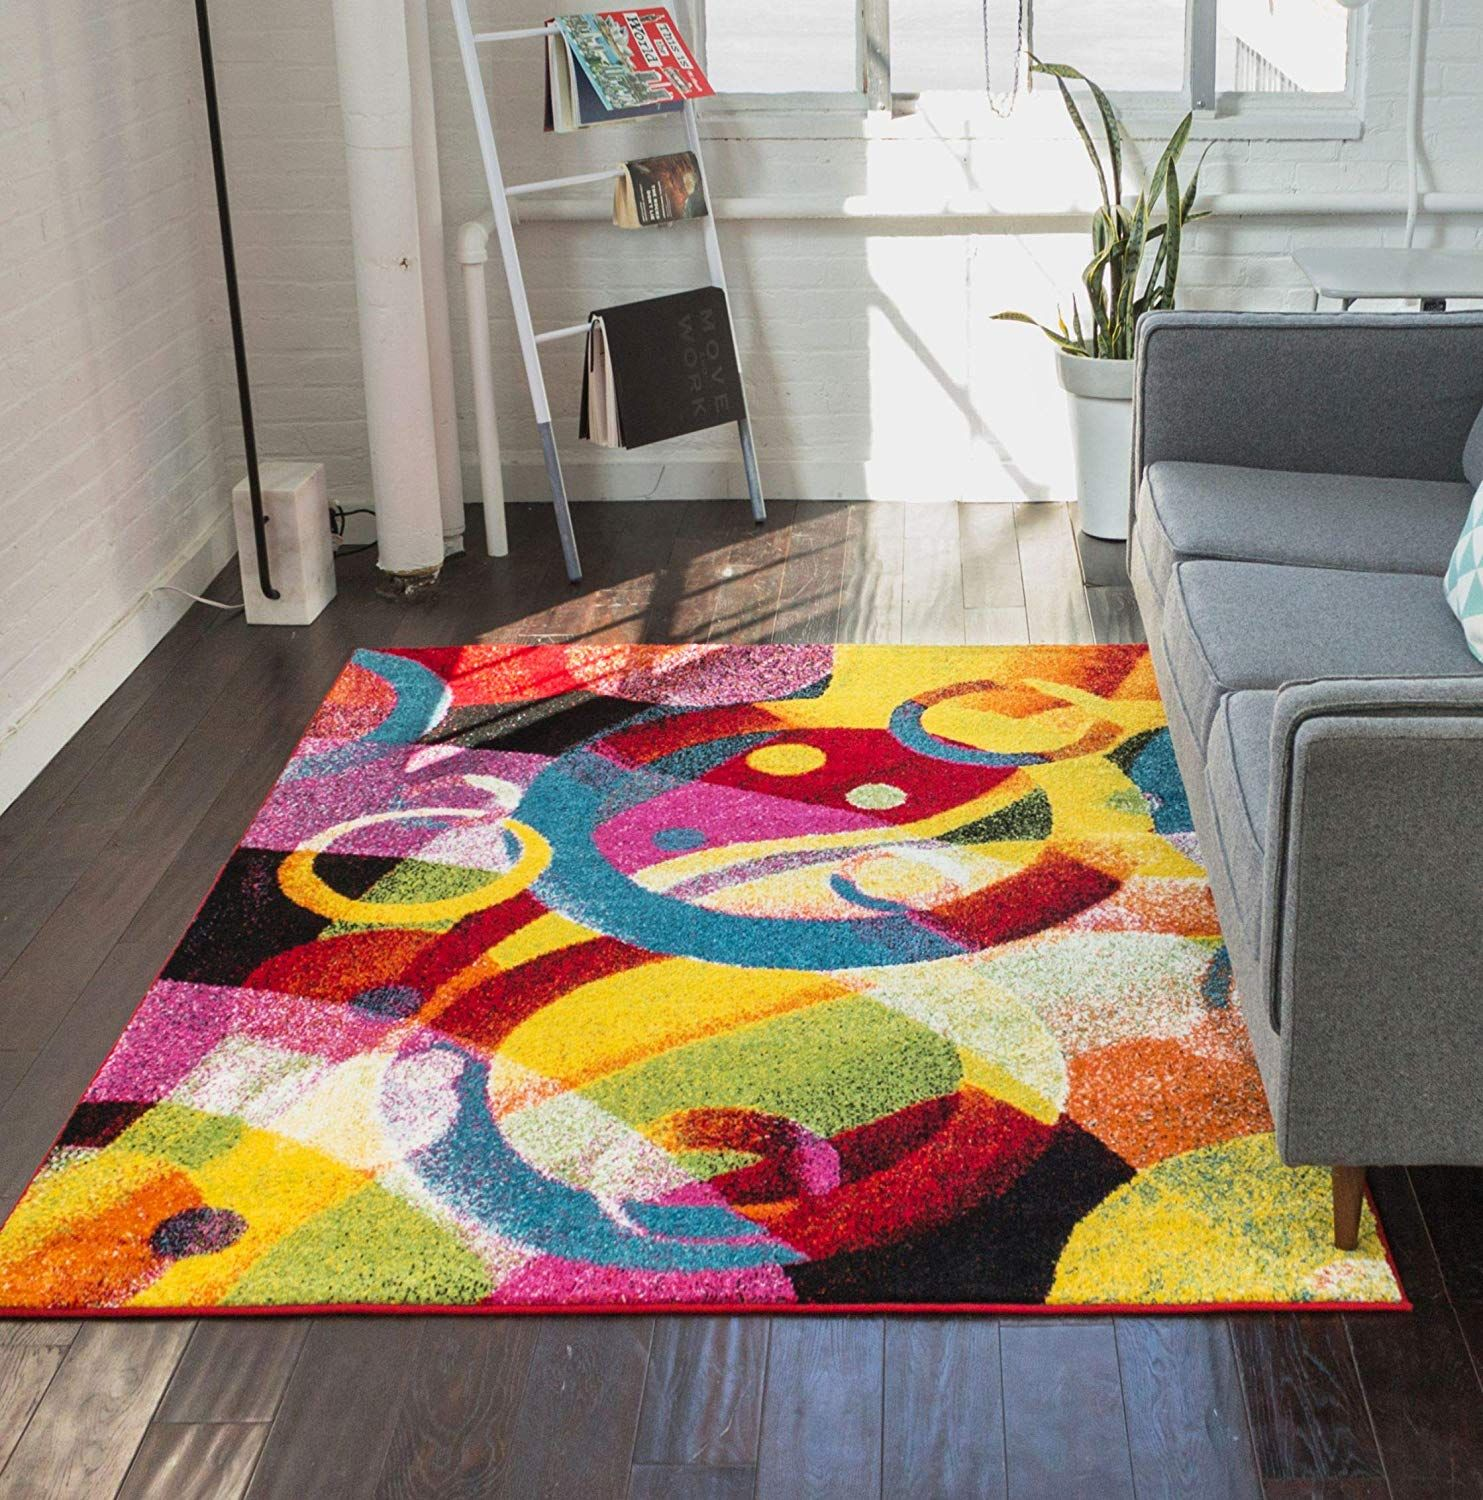 Bubble Bright Multi Circles Yellow Blue Red Abstract Geometric Lines Area Rug Petagadget Colorful Rugs Well Woven Modern Area Rugs